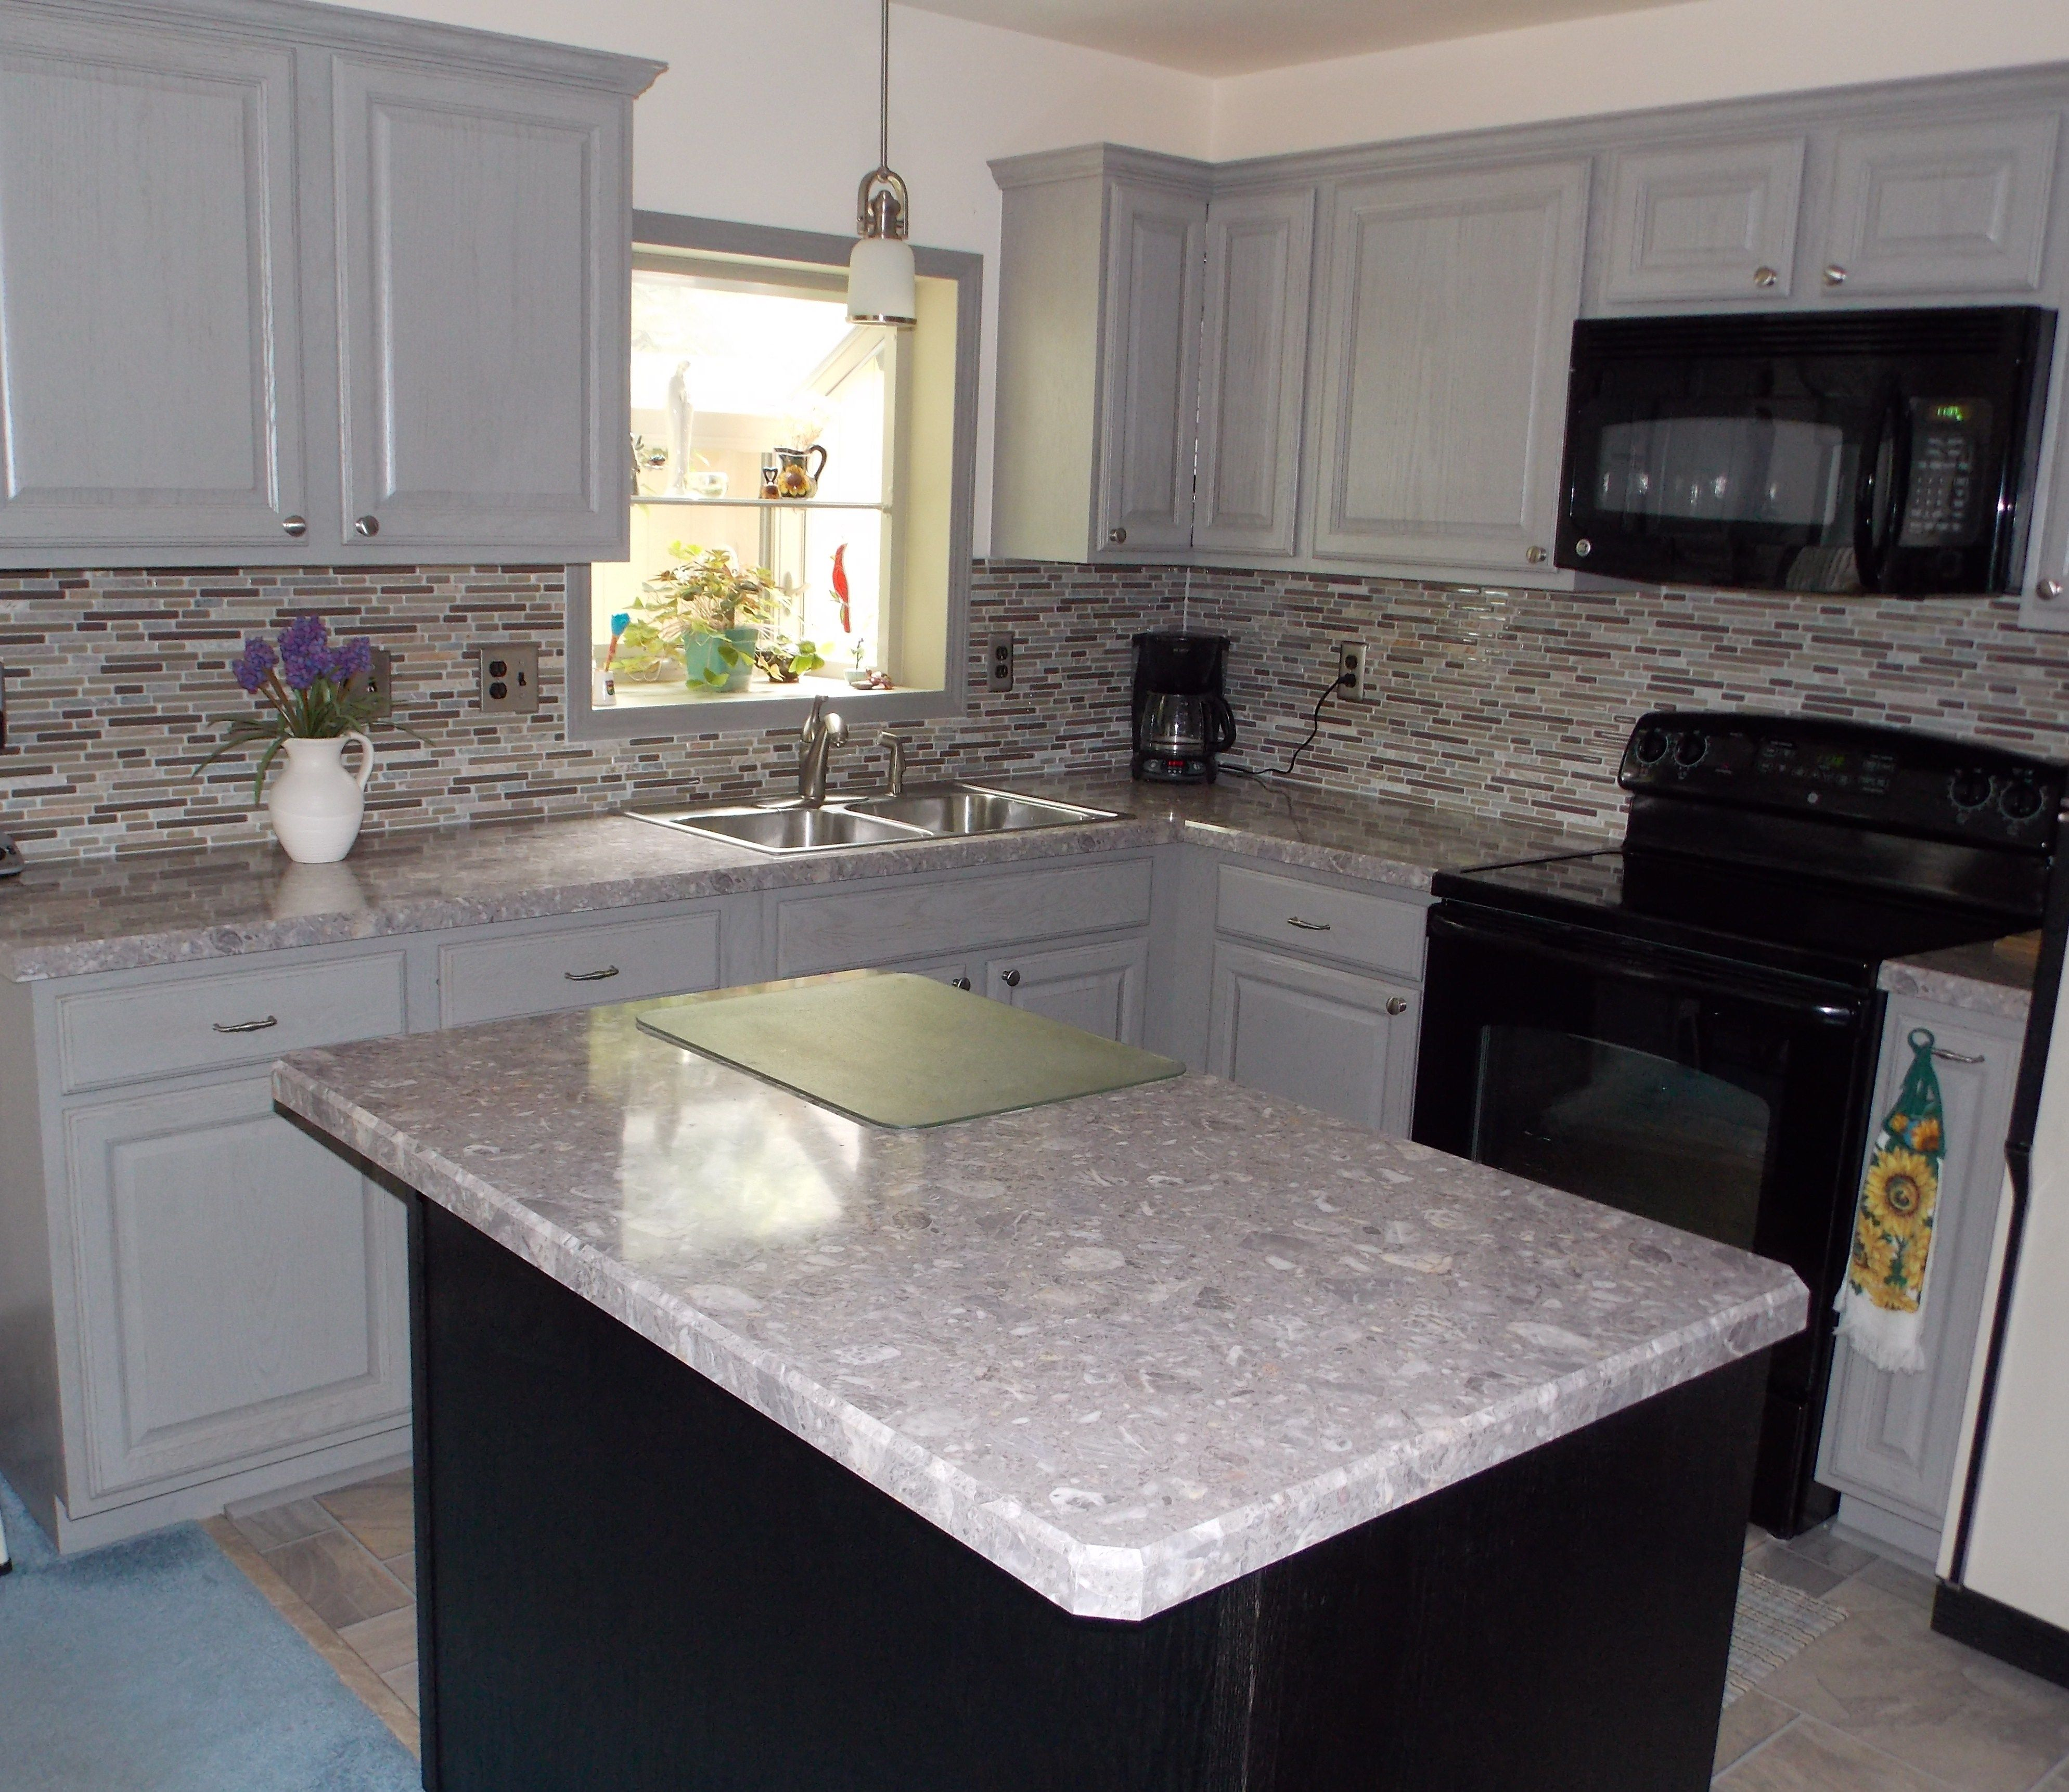 lowes trends how countertops also cubic measurement beautiful figure countertop calculator depot yards laminate pictures photos kitchen to measure home